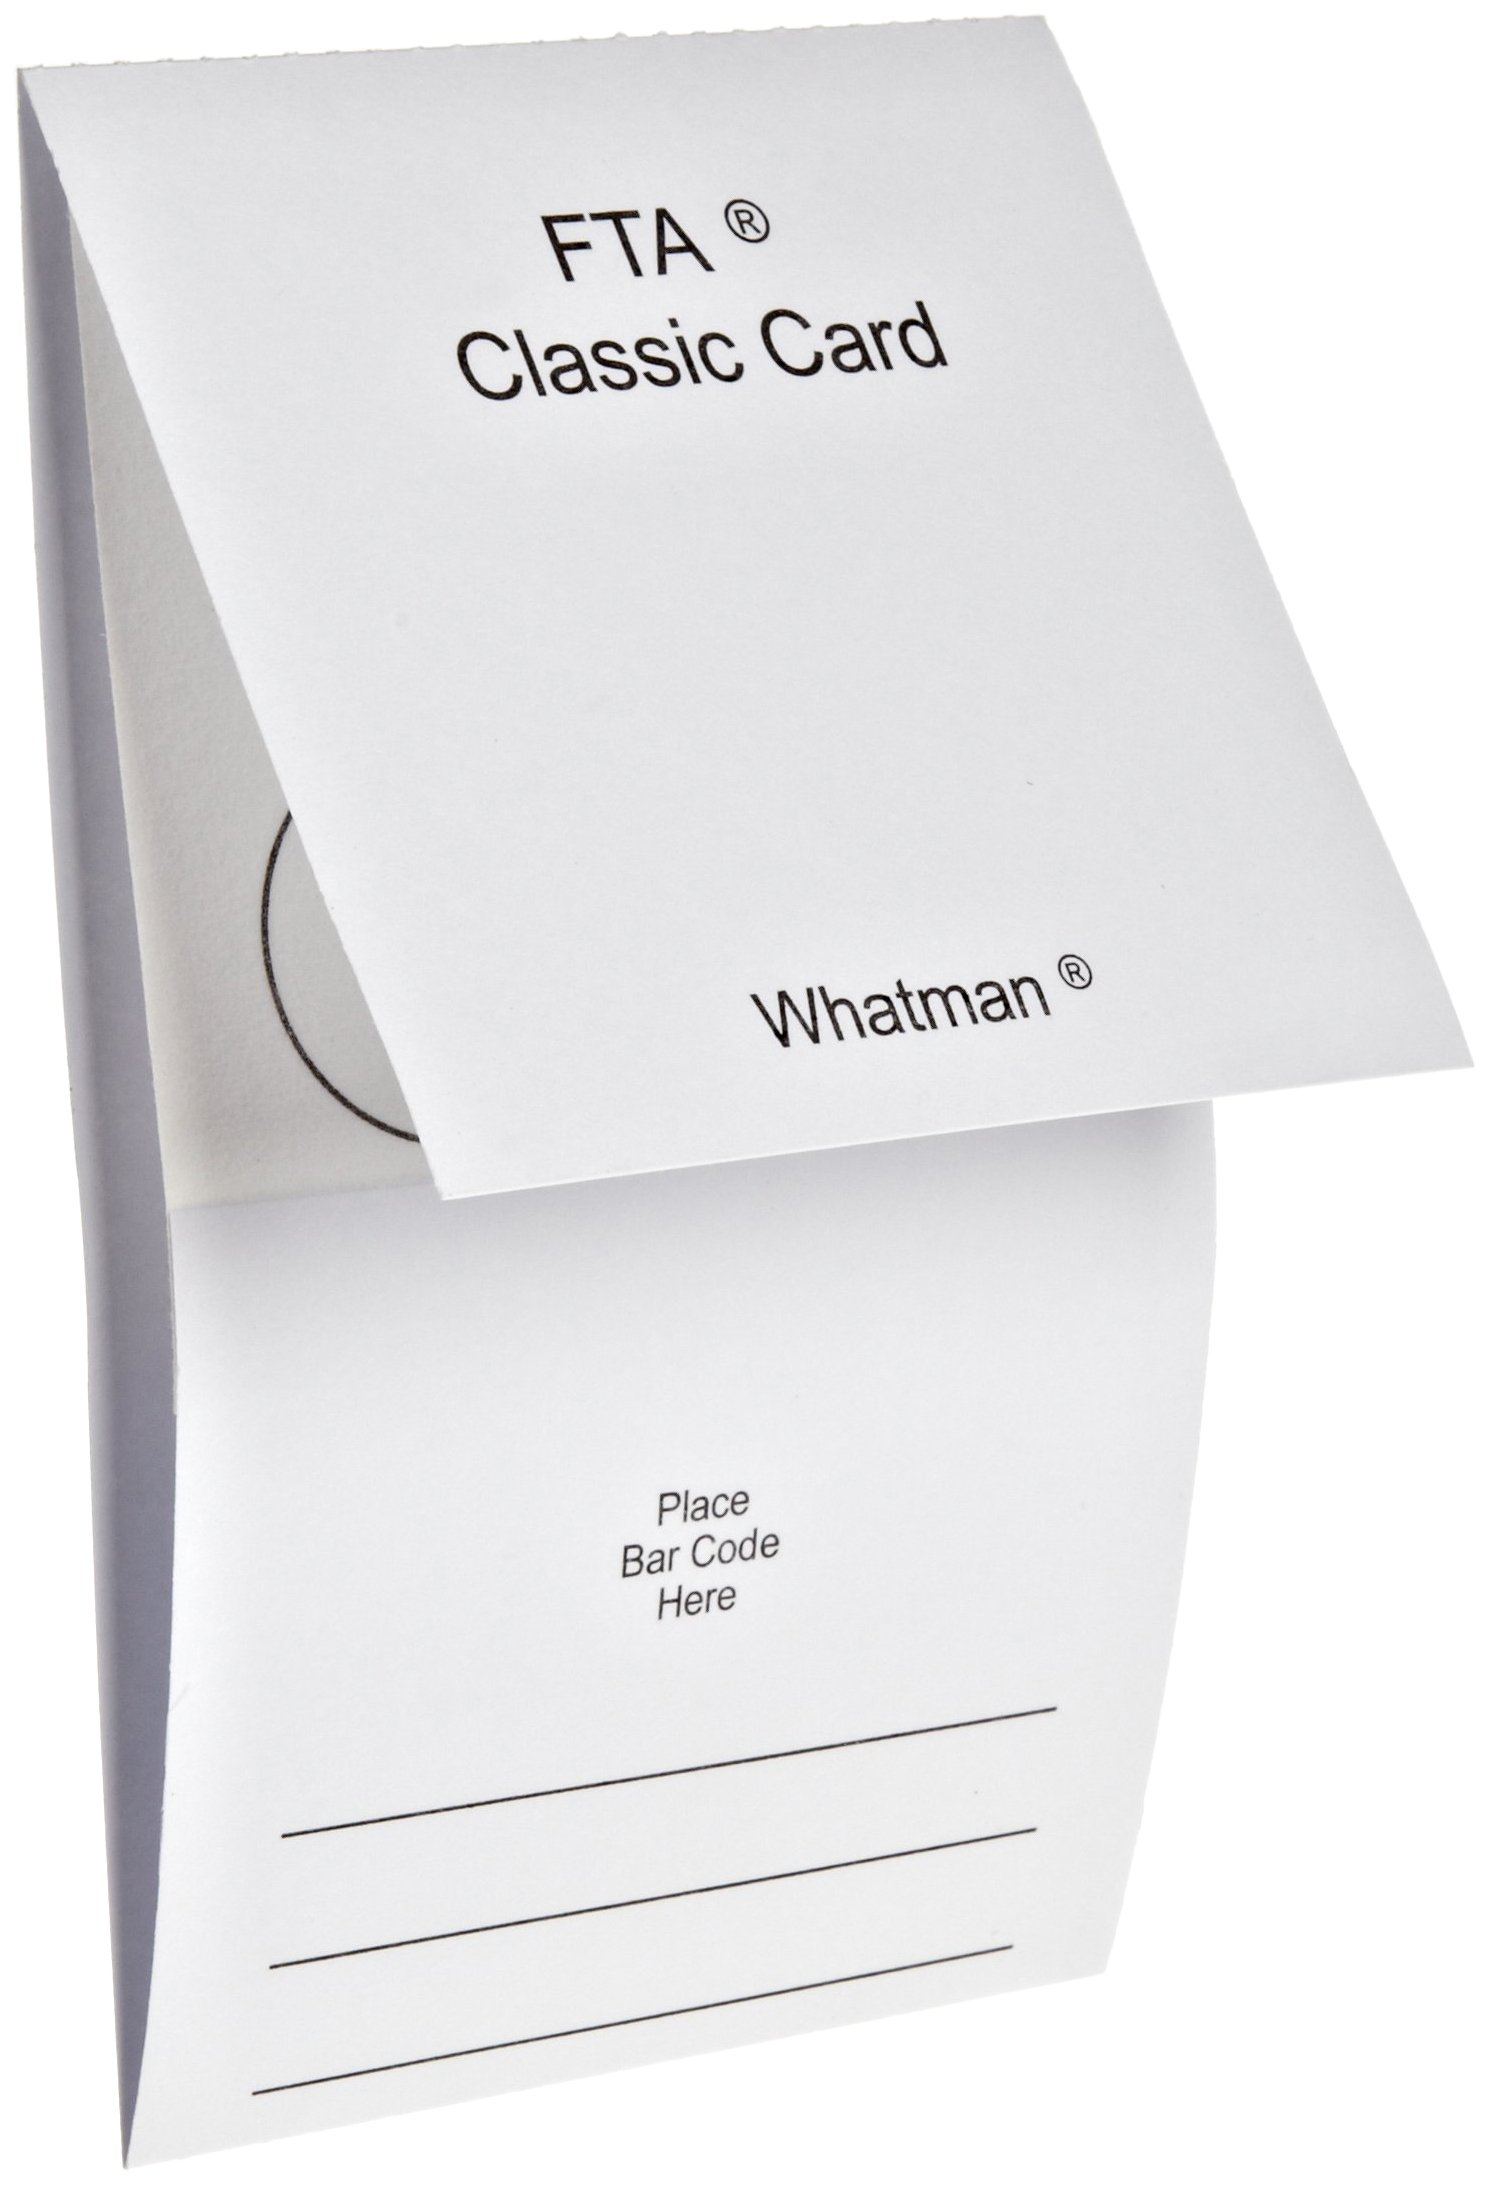 Whatman WB120205 FTA Classic Card 4-Sample Area, 4 x 125 microliter Size (Pack of 100)